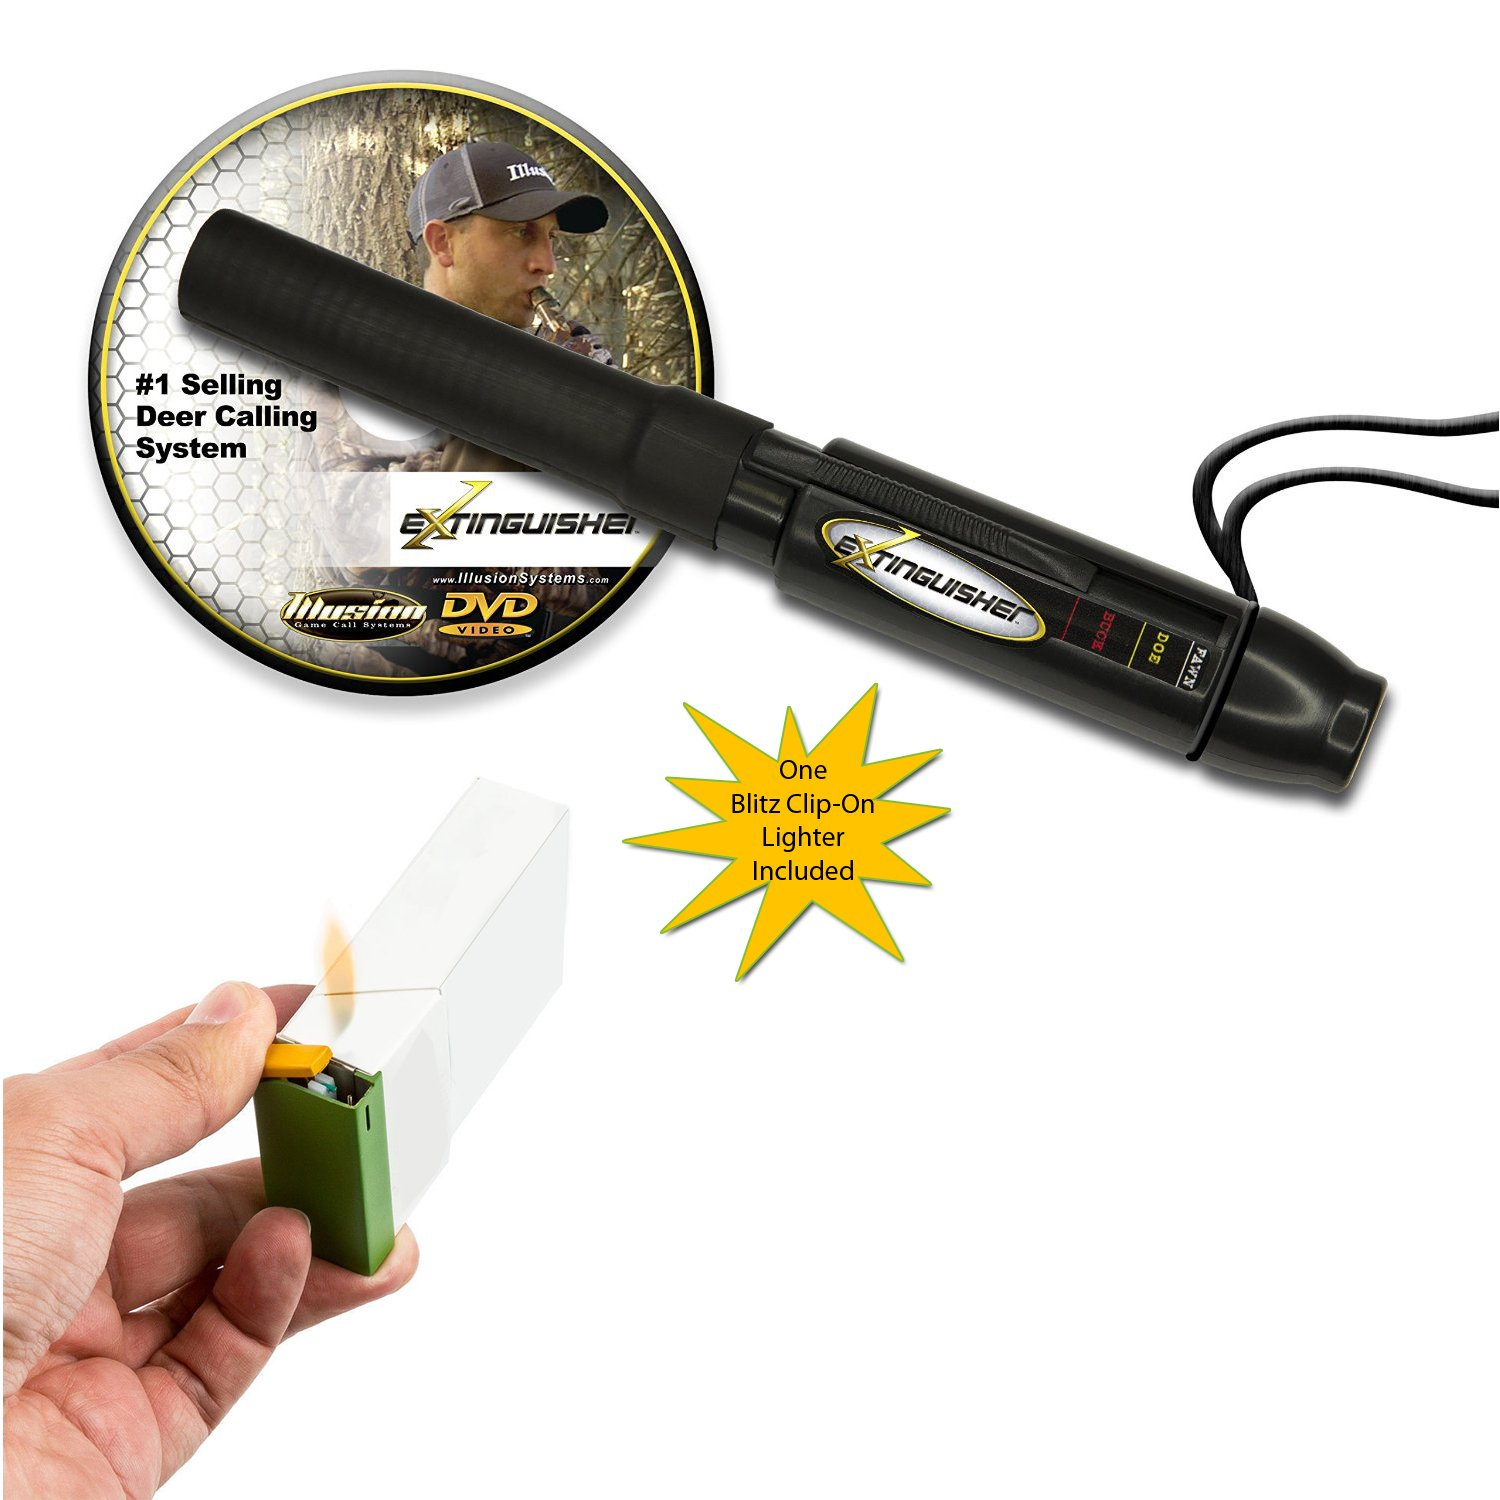 Extinguisher Deer Call (Black) with DVD Instructional + Blitz Clip-On Lighter by Illusion Systems (Image #1)